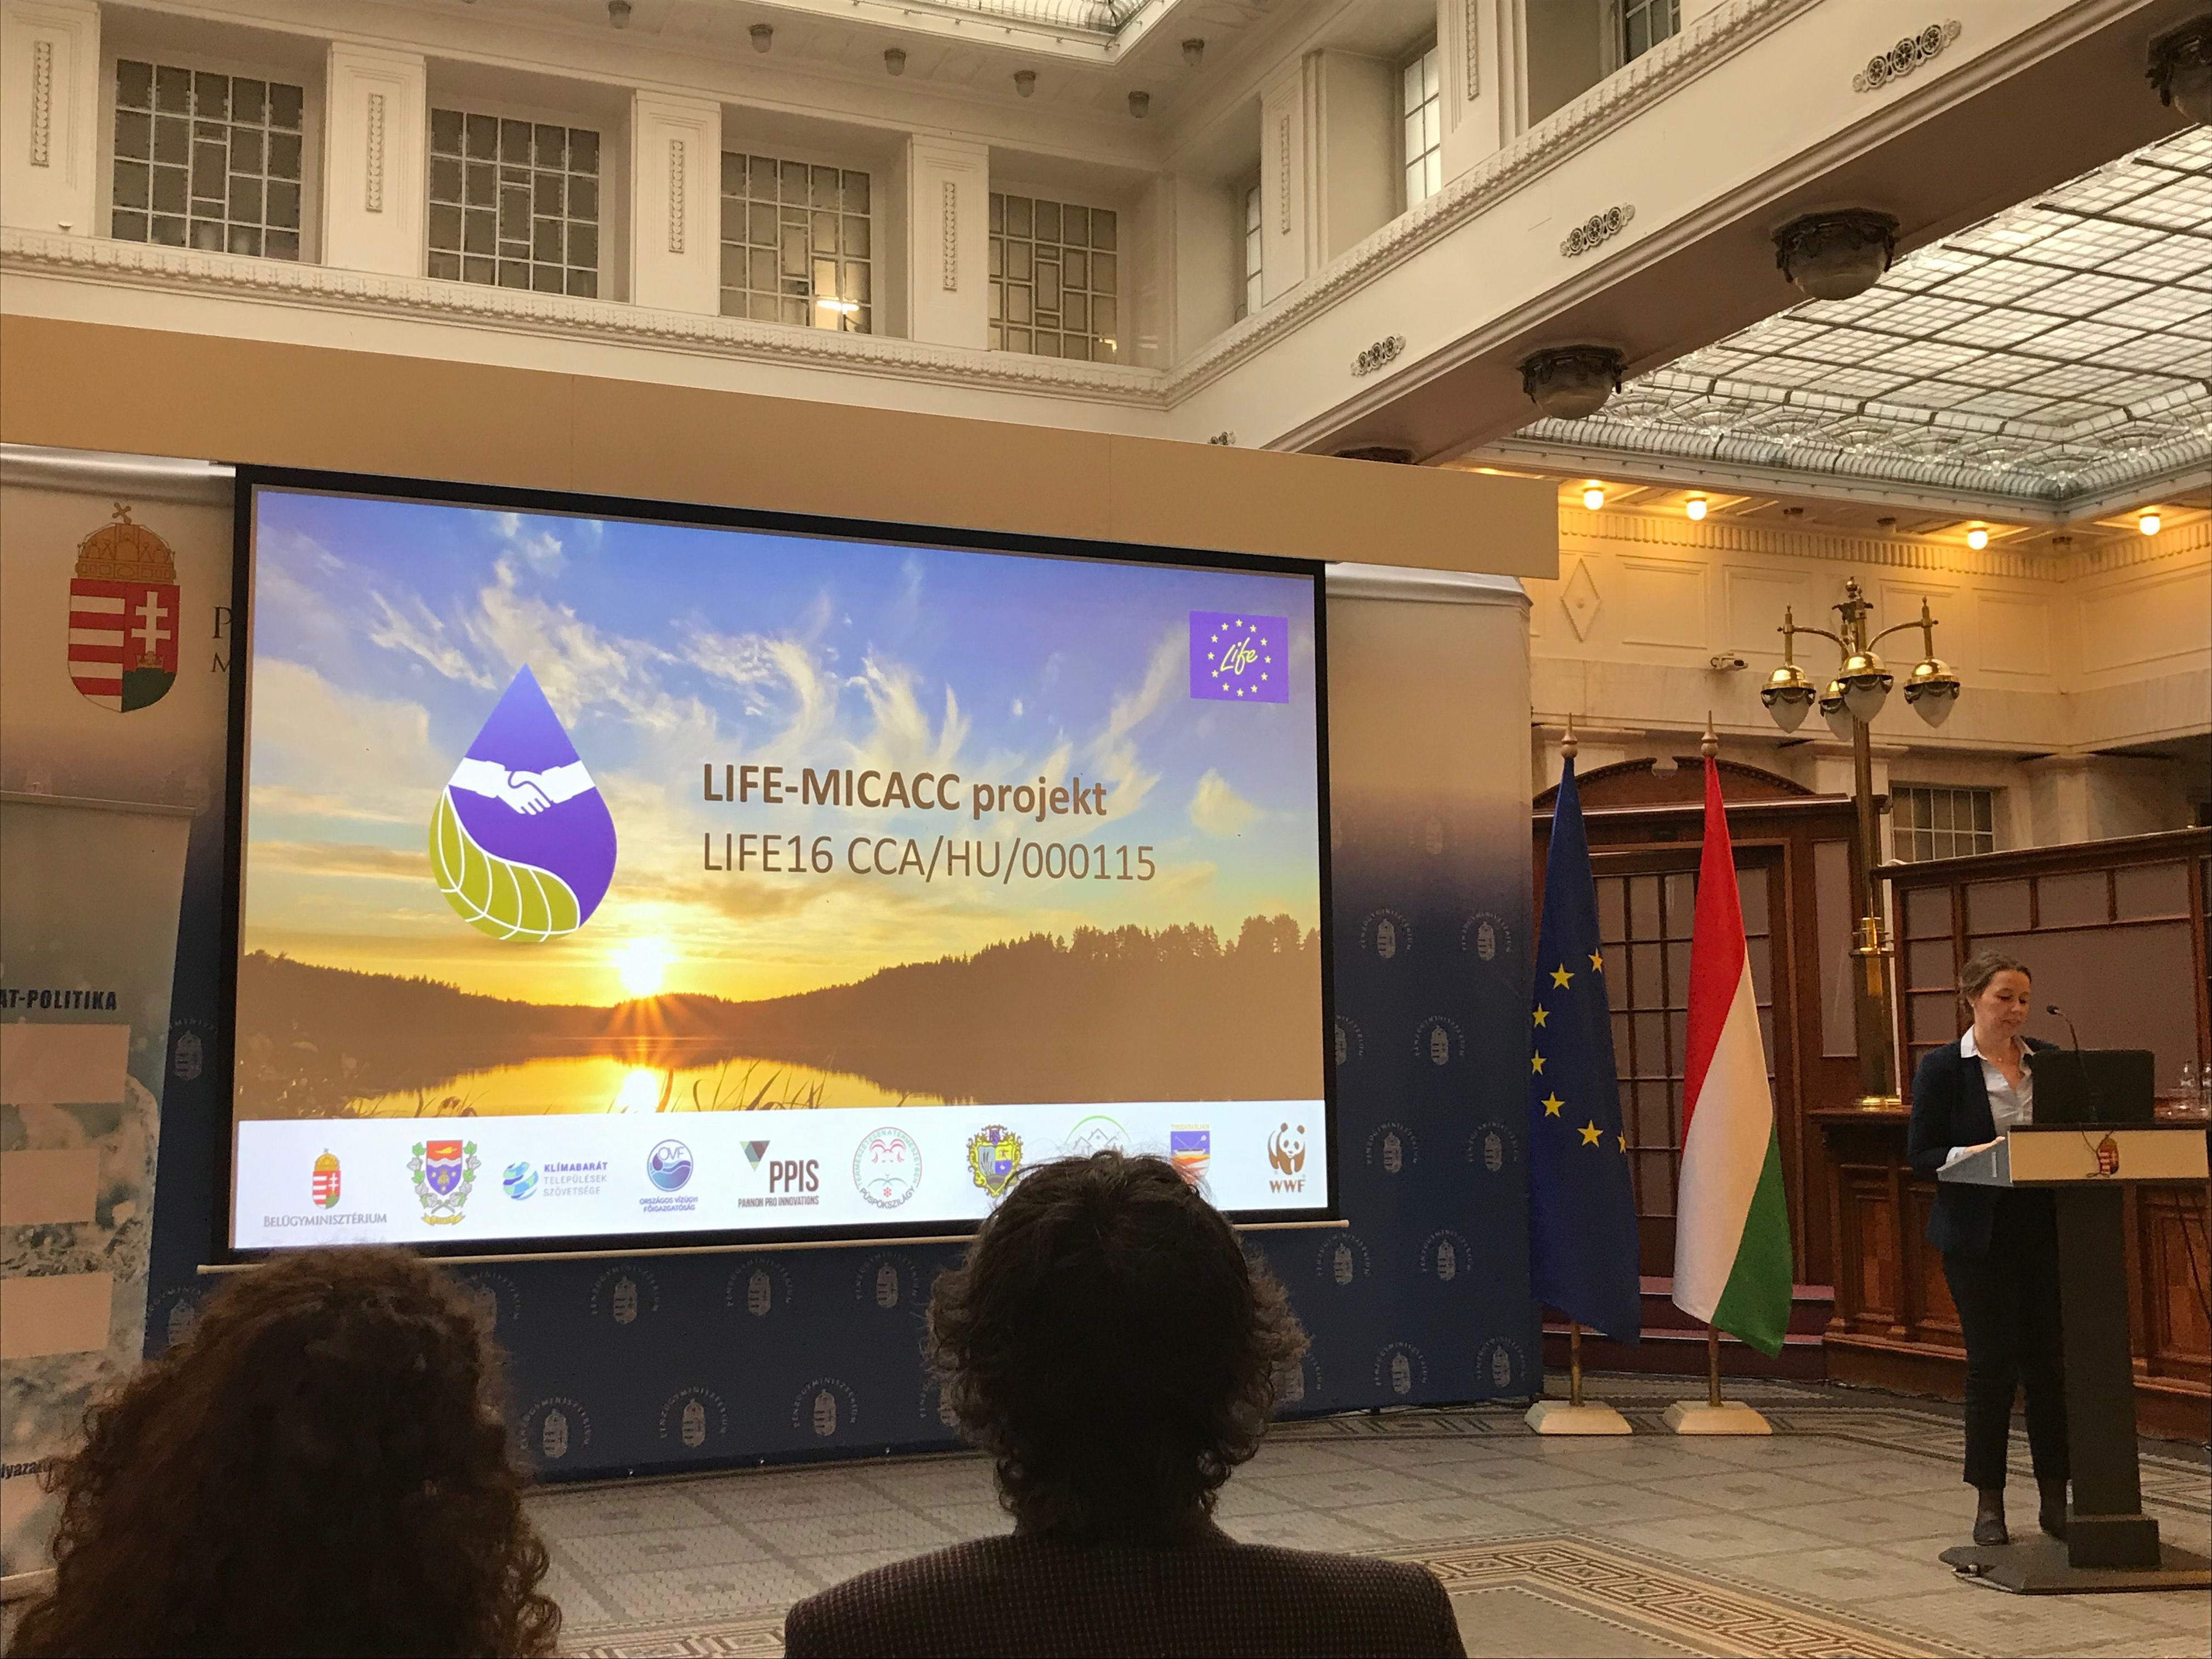 Introducing the LIFE-MICACC project, presentation by Zsuzsanna Hercig